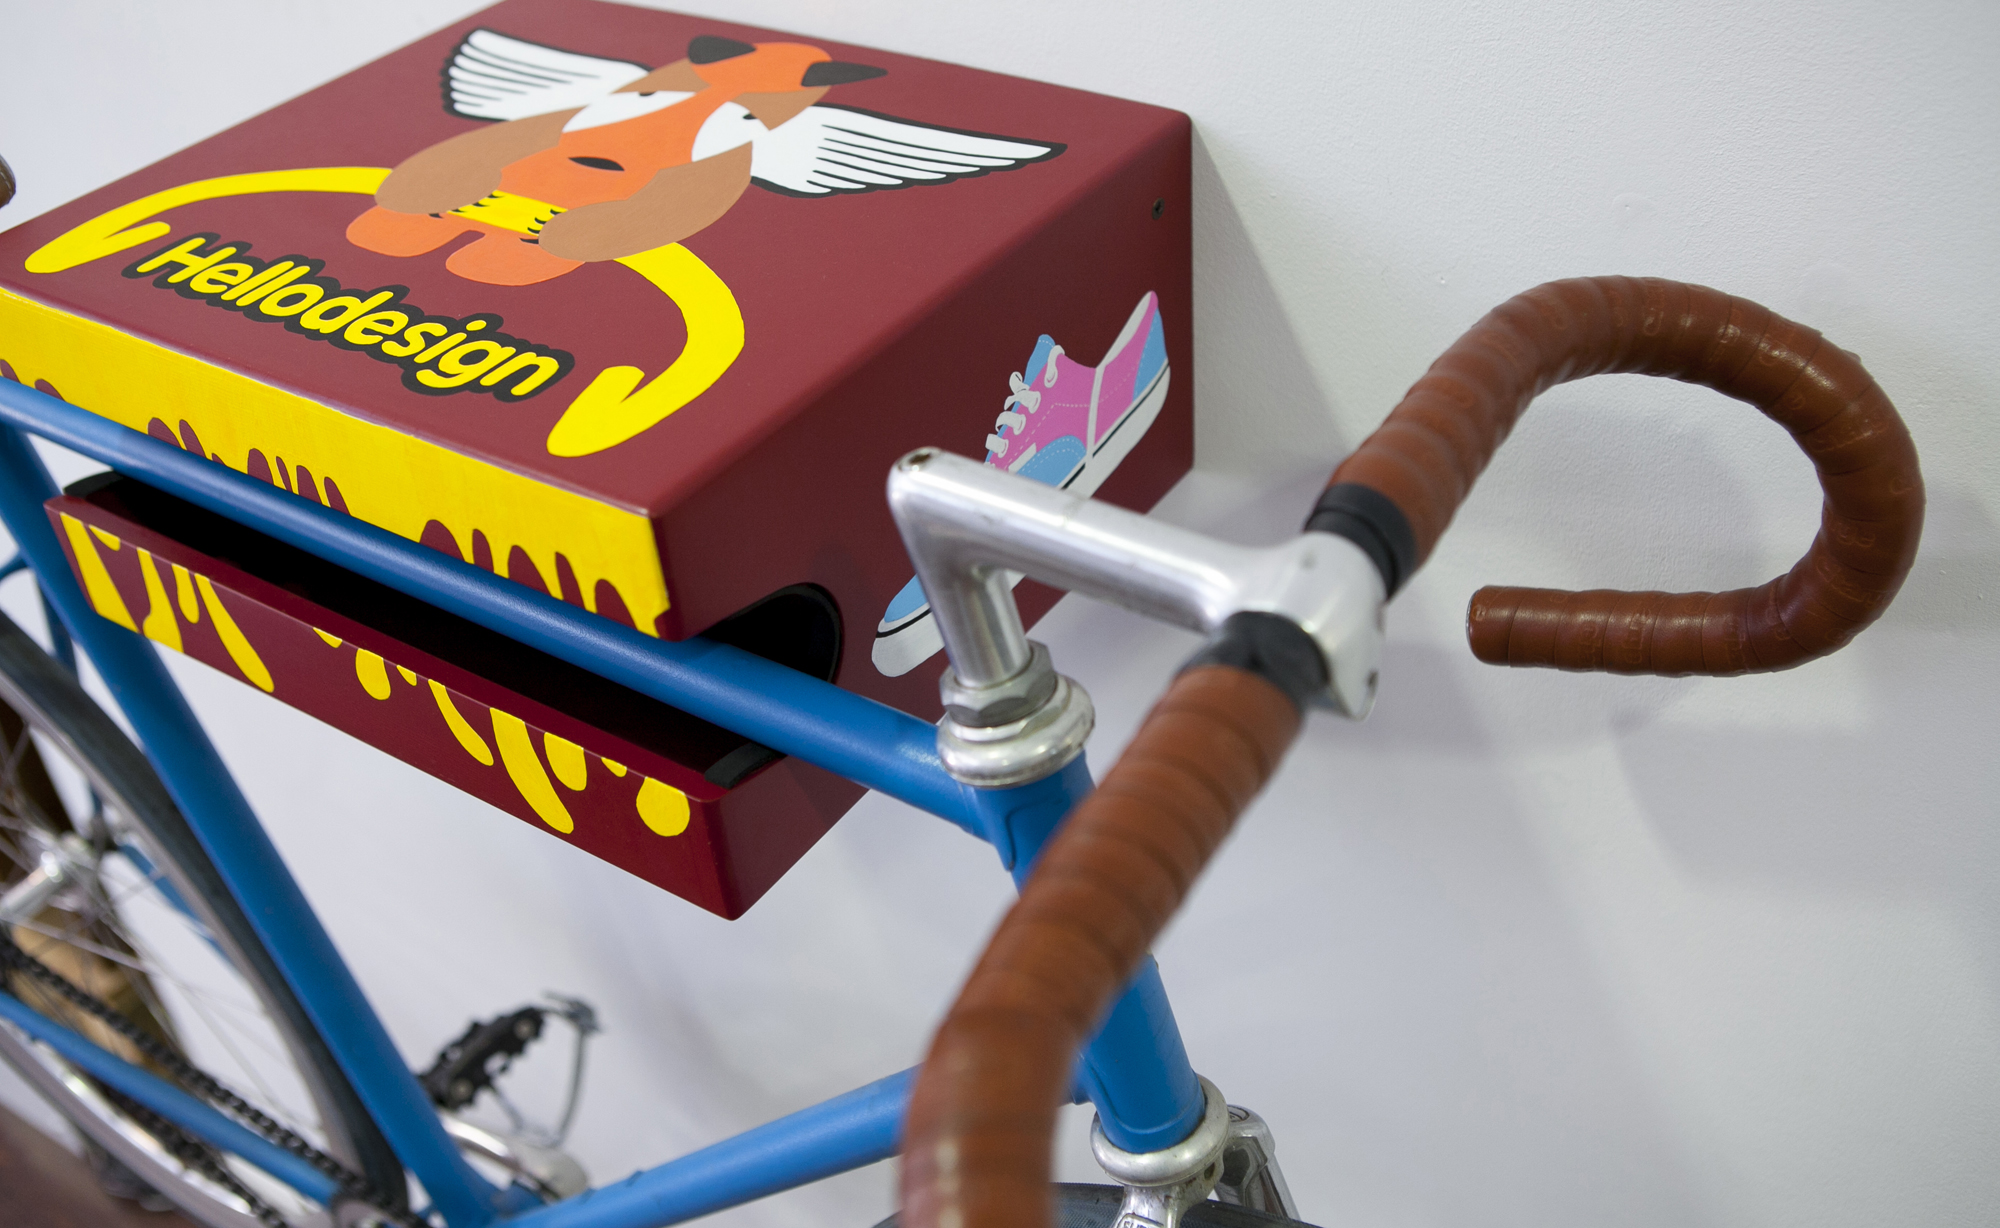 Hellodesign_custom_bike_holder_07